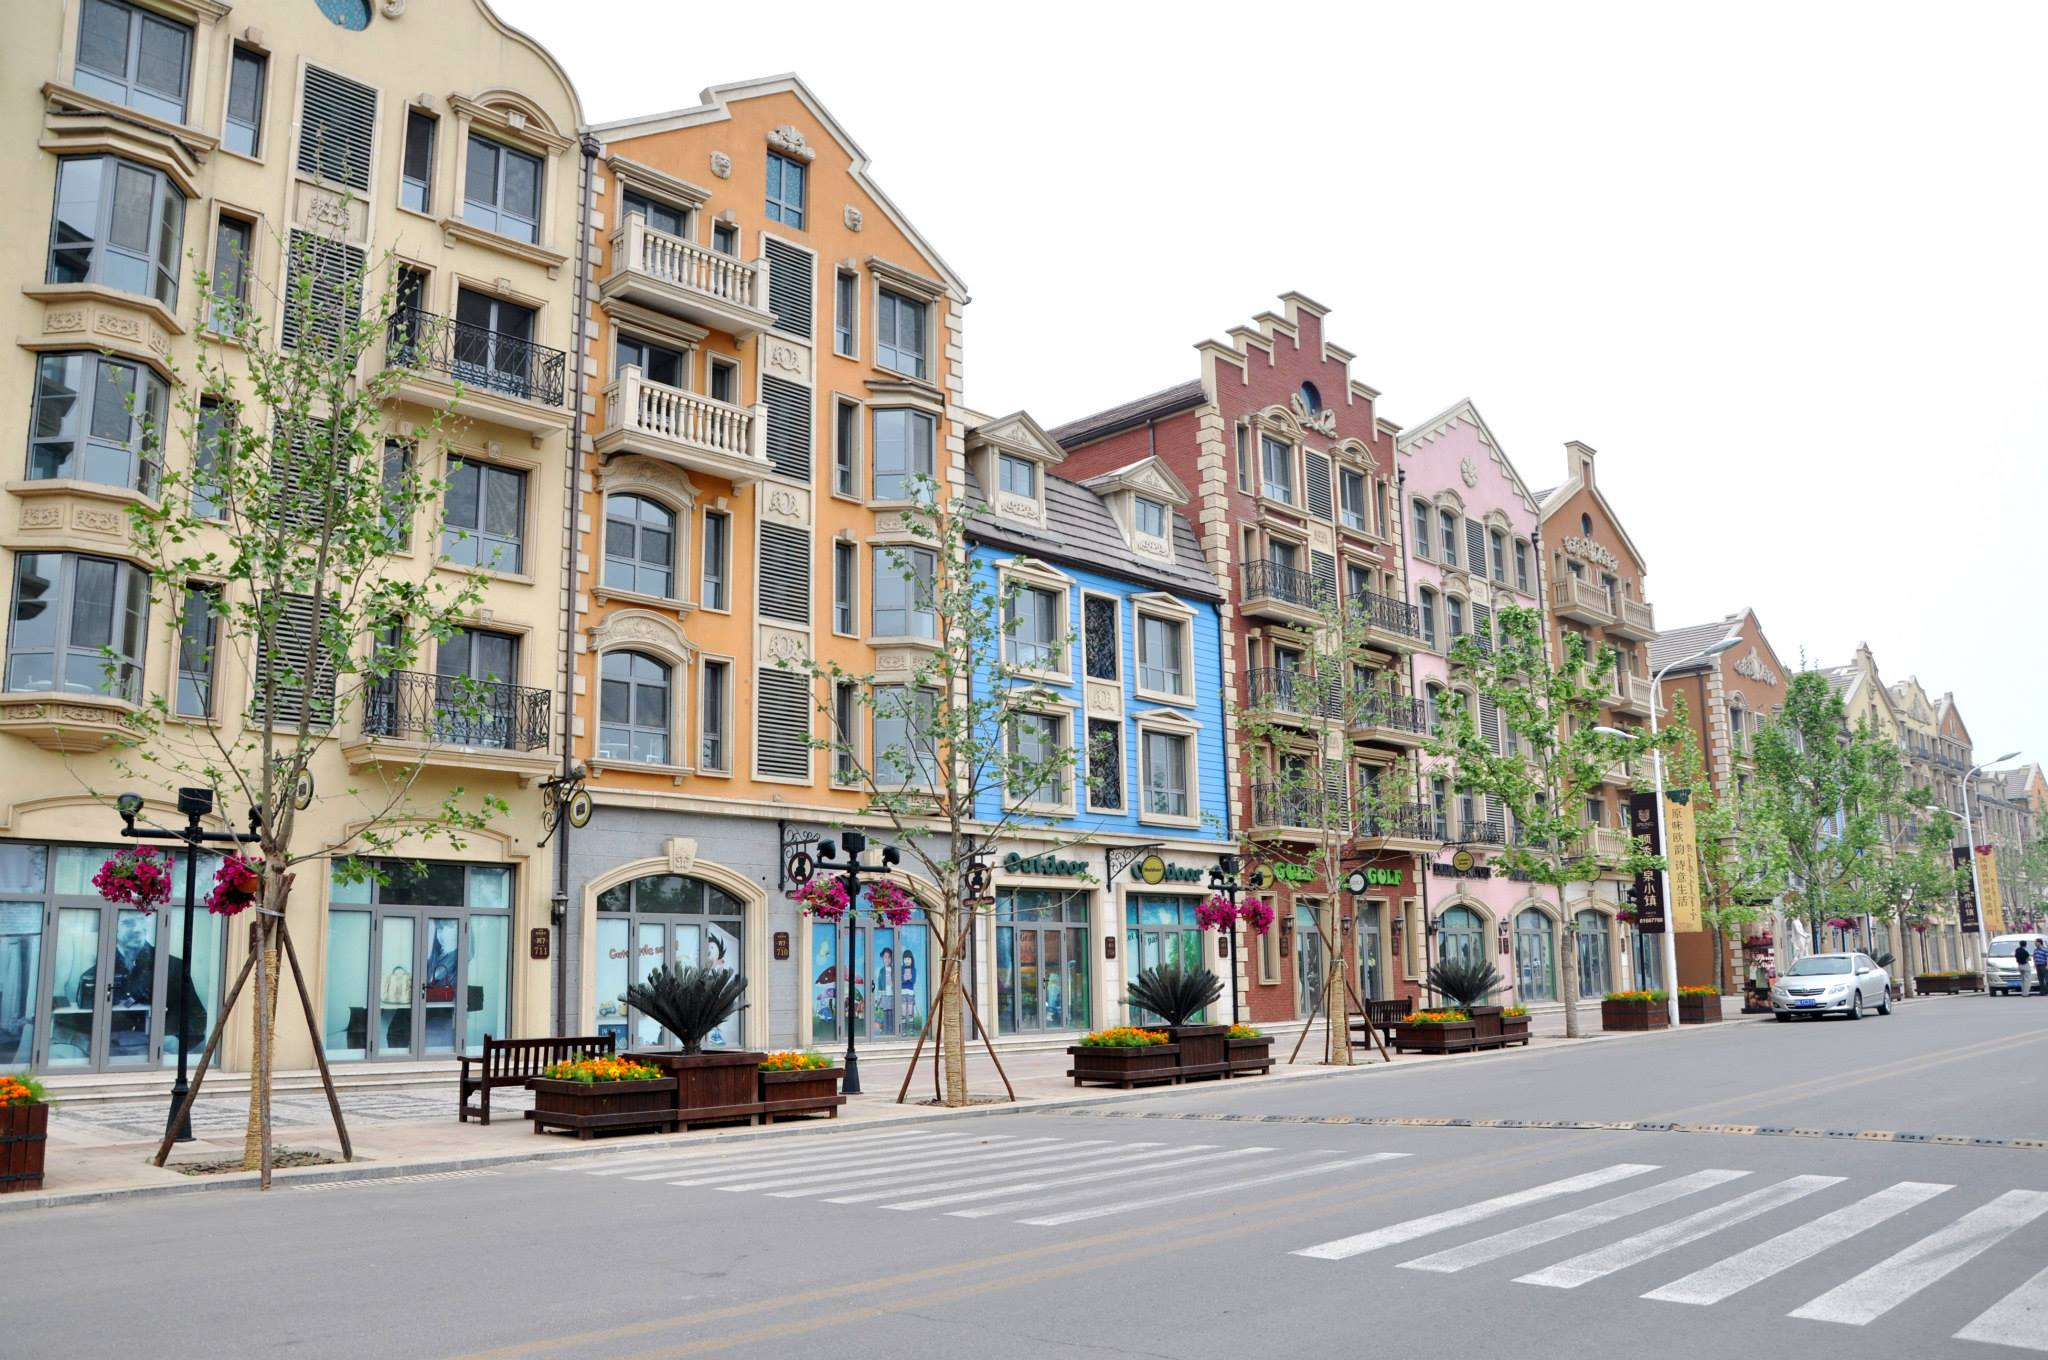 China's Eerie Faux-European Ghost Towns